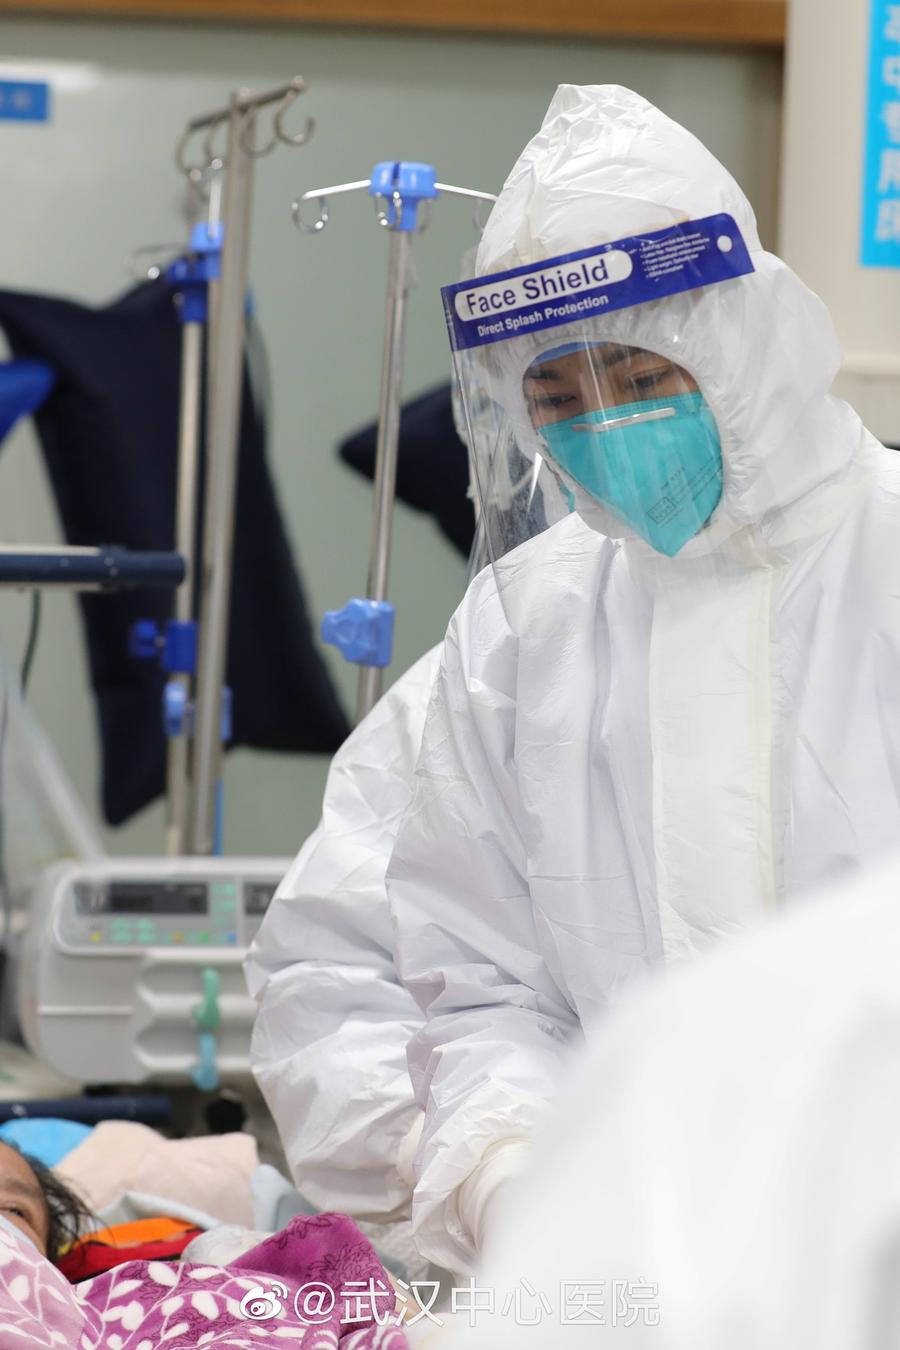 Pictures uploaded to social media on January 25, 2020 by the Central Hospital of Wuhan show medical staff attending to a patient, in Wuhan, China